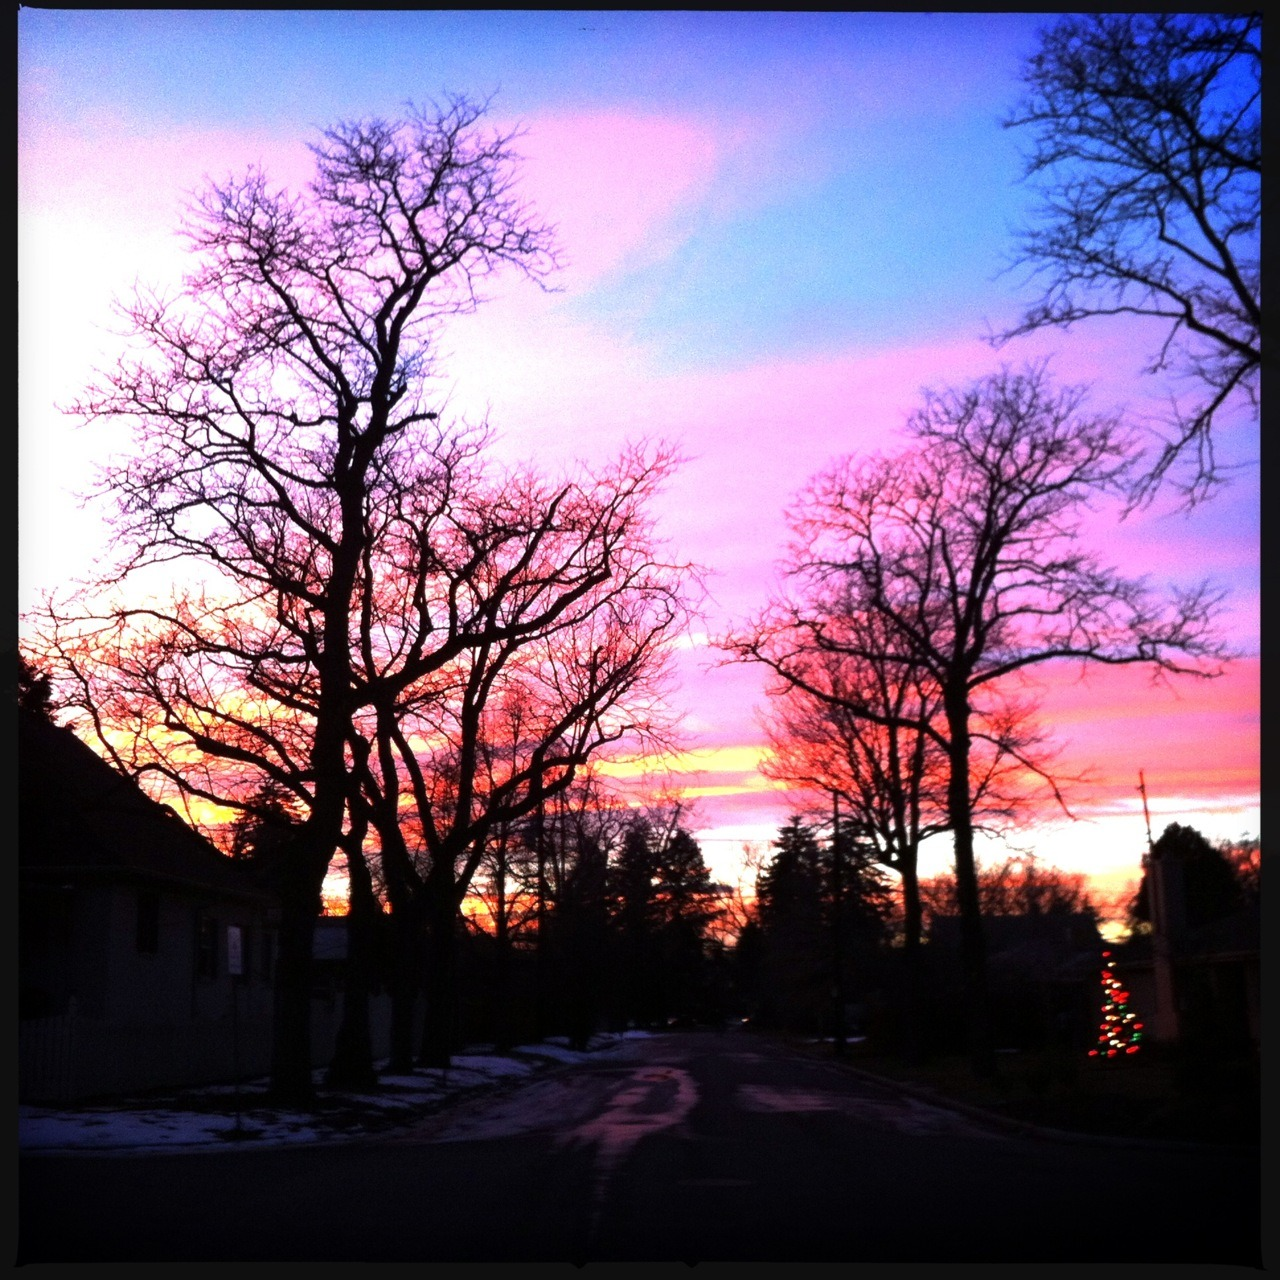 Sunset VI Taken with Hipstamatic, Hornbecker Lens, DC Film, No Flash.